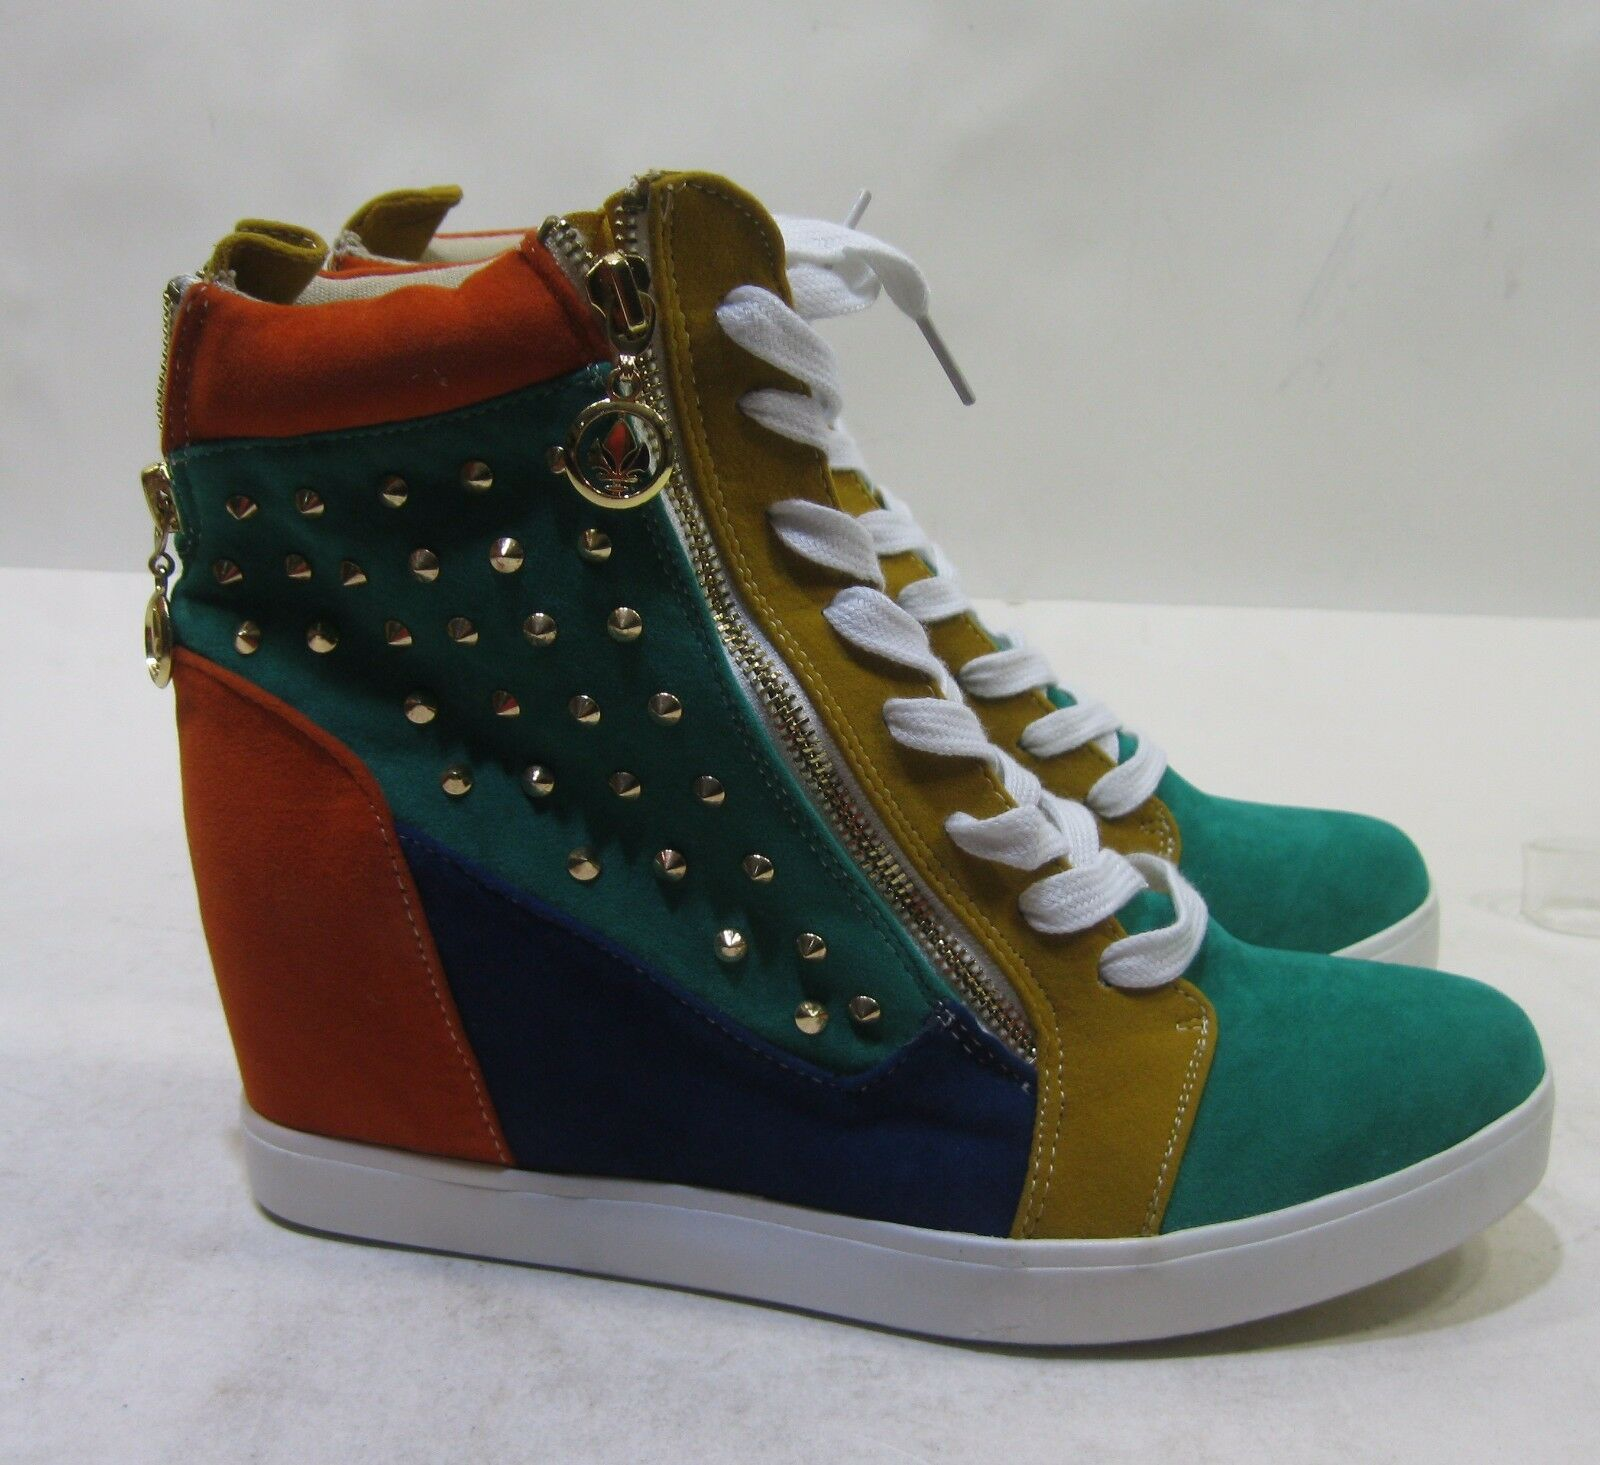 "Green/Multi Spikes 3""Hidden Wedge Heel Lace Up Ankle Boots Size 9"